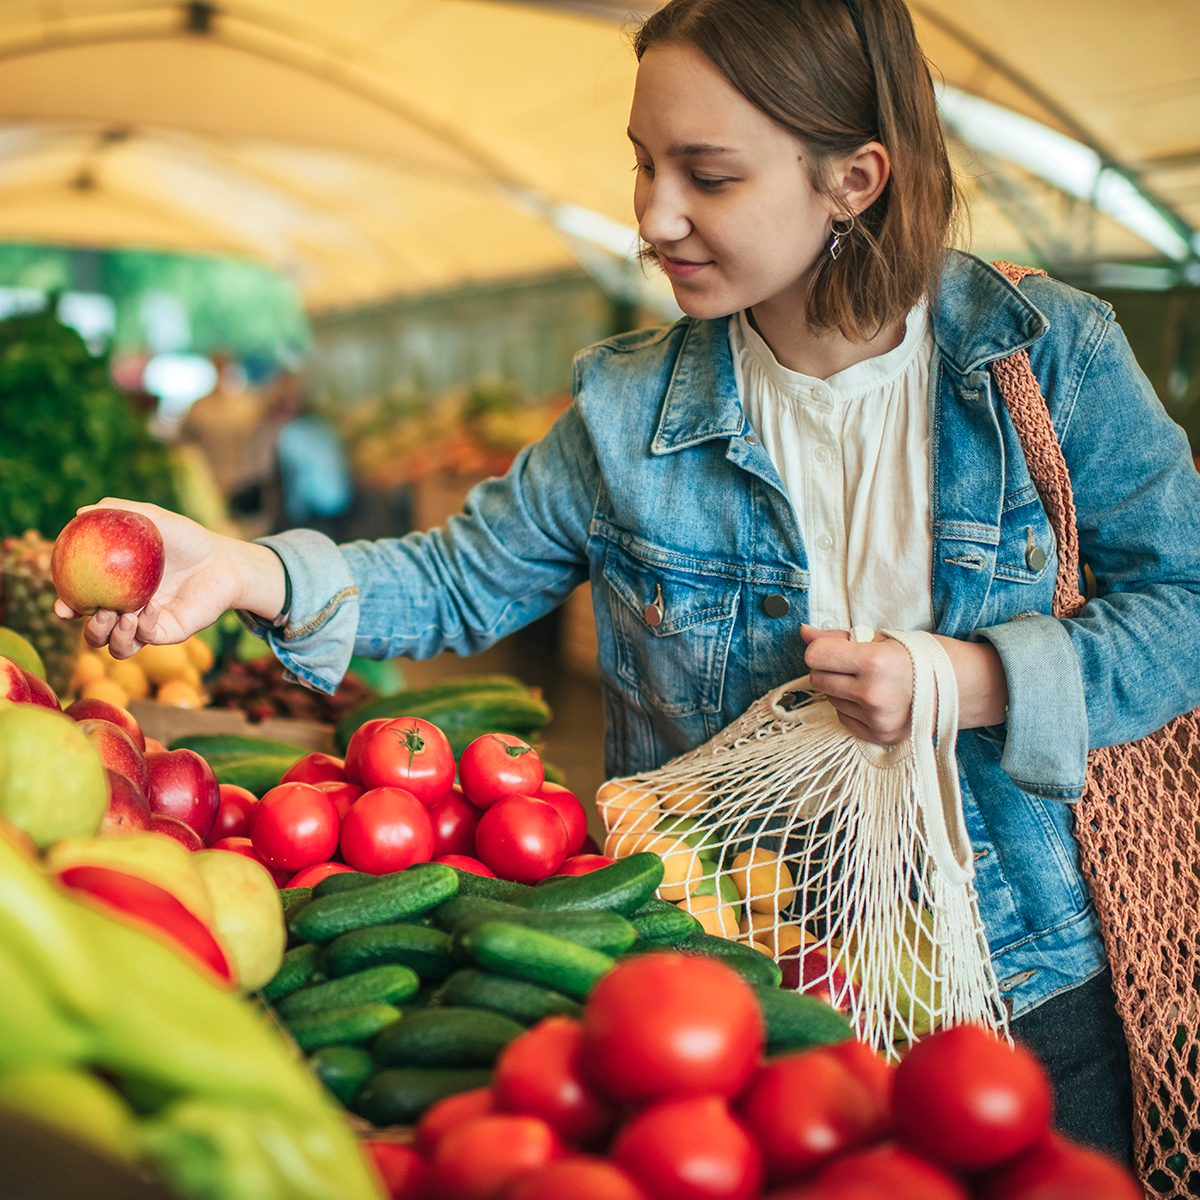 Teenager holding ecologically friendly reusable bag with fruit and vegetables